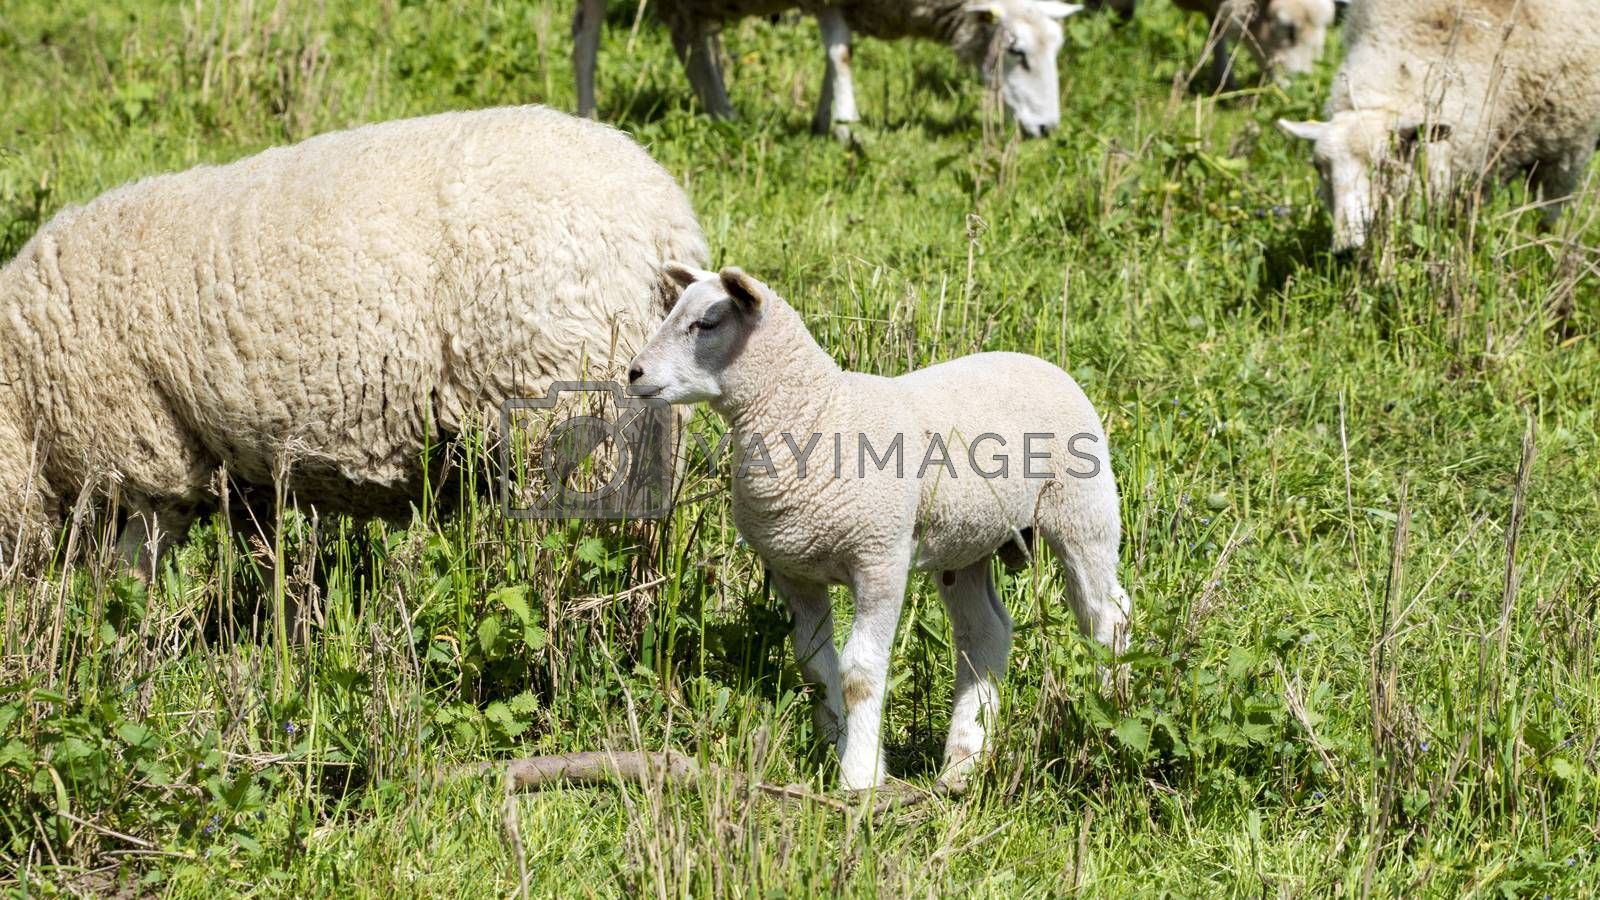 Royalty free image of Sheep in a meadow by Fr@nk